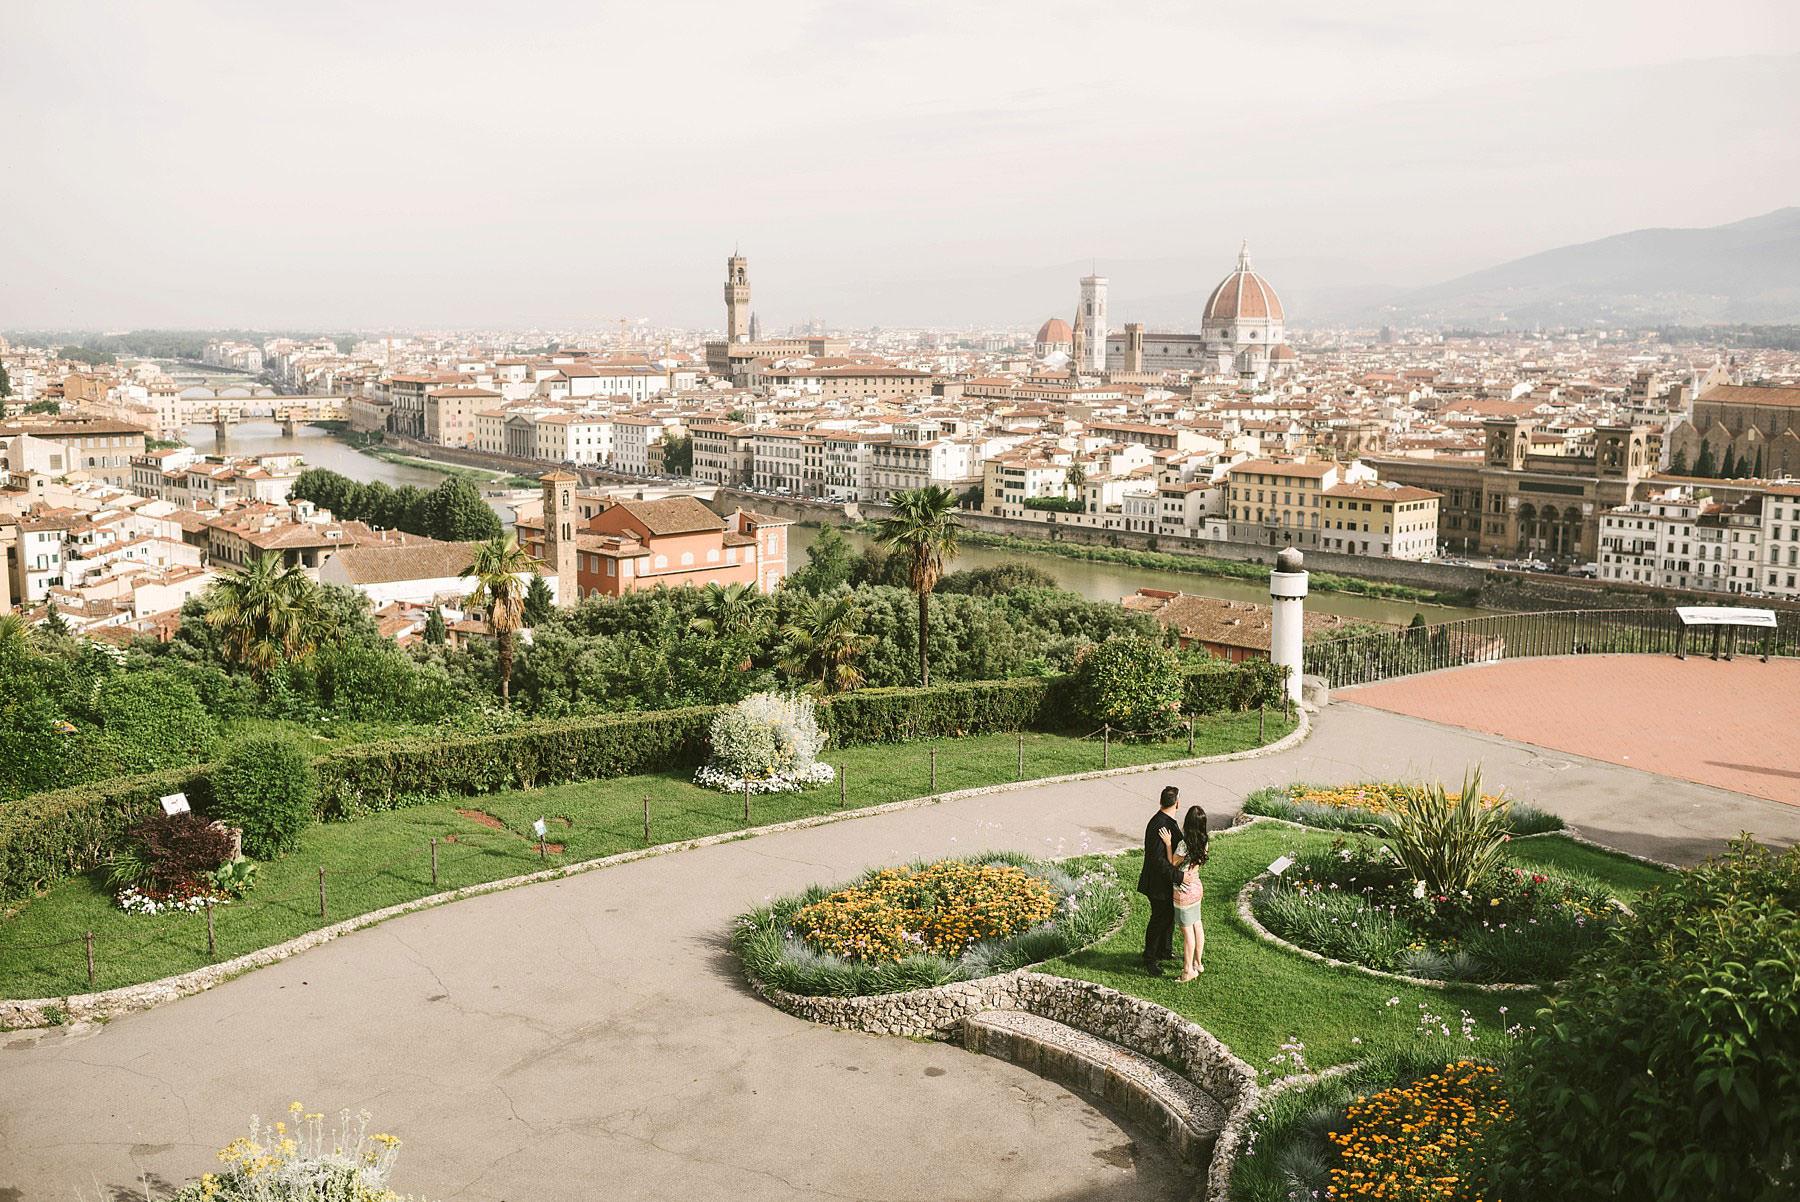 Unforgettable and elegant Florence sunrise photo shoot at Piazzale Michelangelo. Enjoy the most beautiful panoramic view